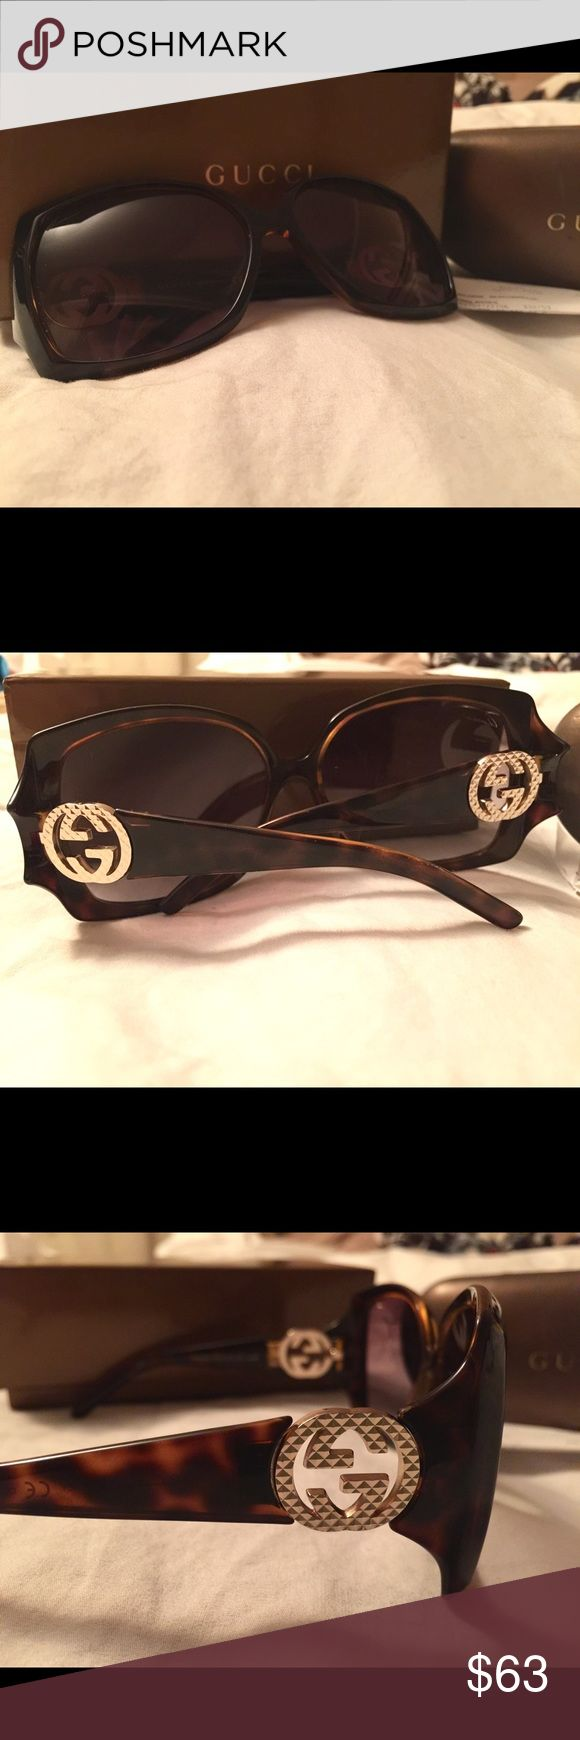 Gucci Sunglasses Gucci Sunglasses. See pics for details and wear. Comes with original box, original receipt & glasses case. Case has some scratches and wear. Glasses are missing a screw on the logo, but they are secure and it doesn't affect wearability. There are some signs of wear on the right lense- see pic. Originally $245 (June 2012).   Will ship same day if purchased before 2pm M-F. Otherwise, next business day. Open to all reasonable offers. Gucci Accessories Sunglasses